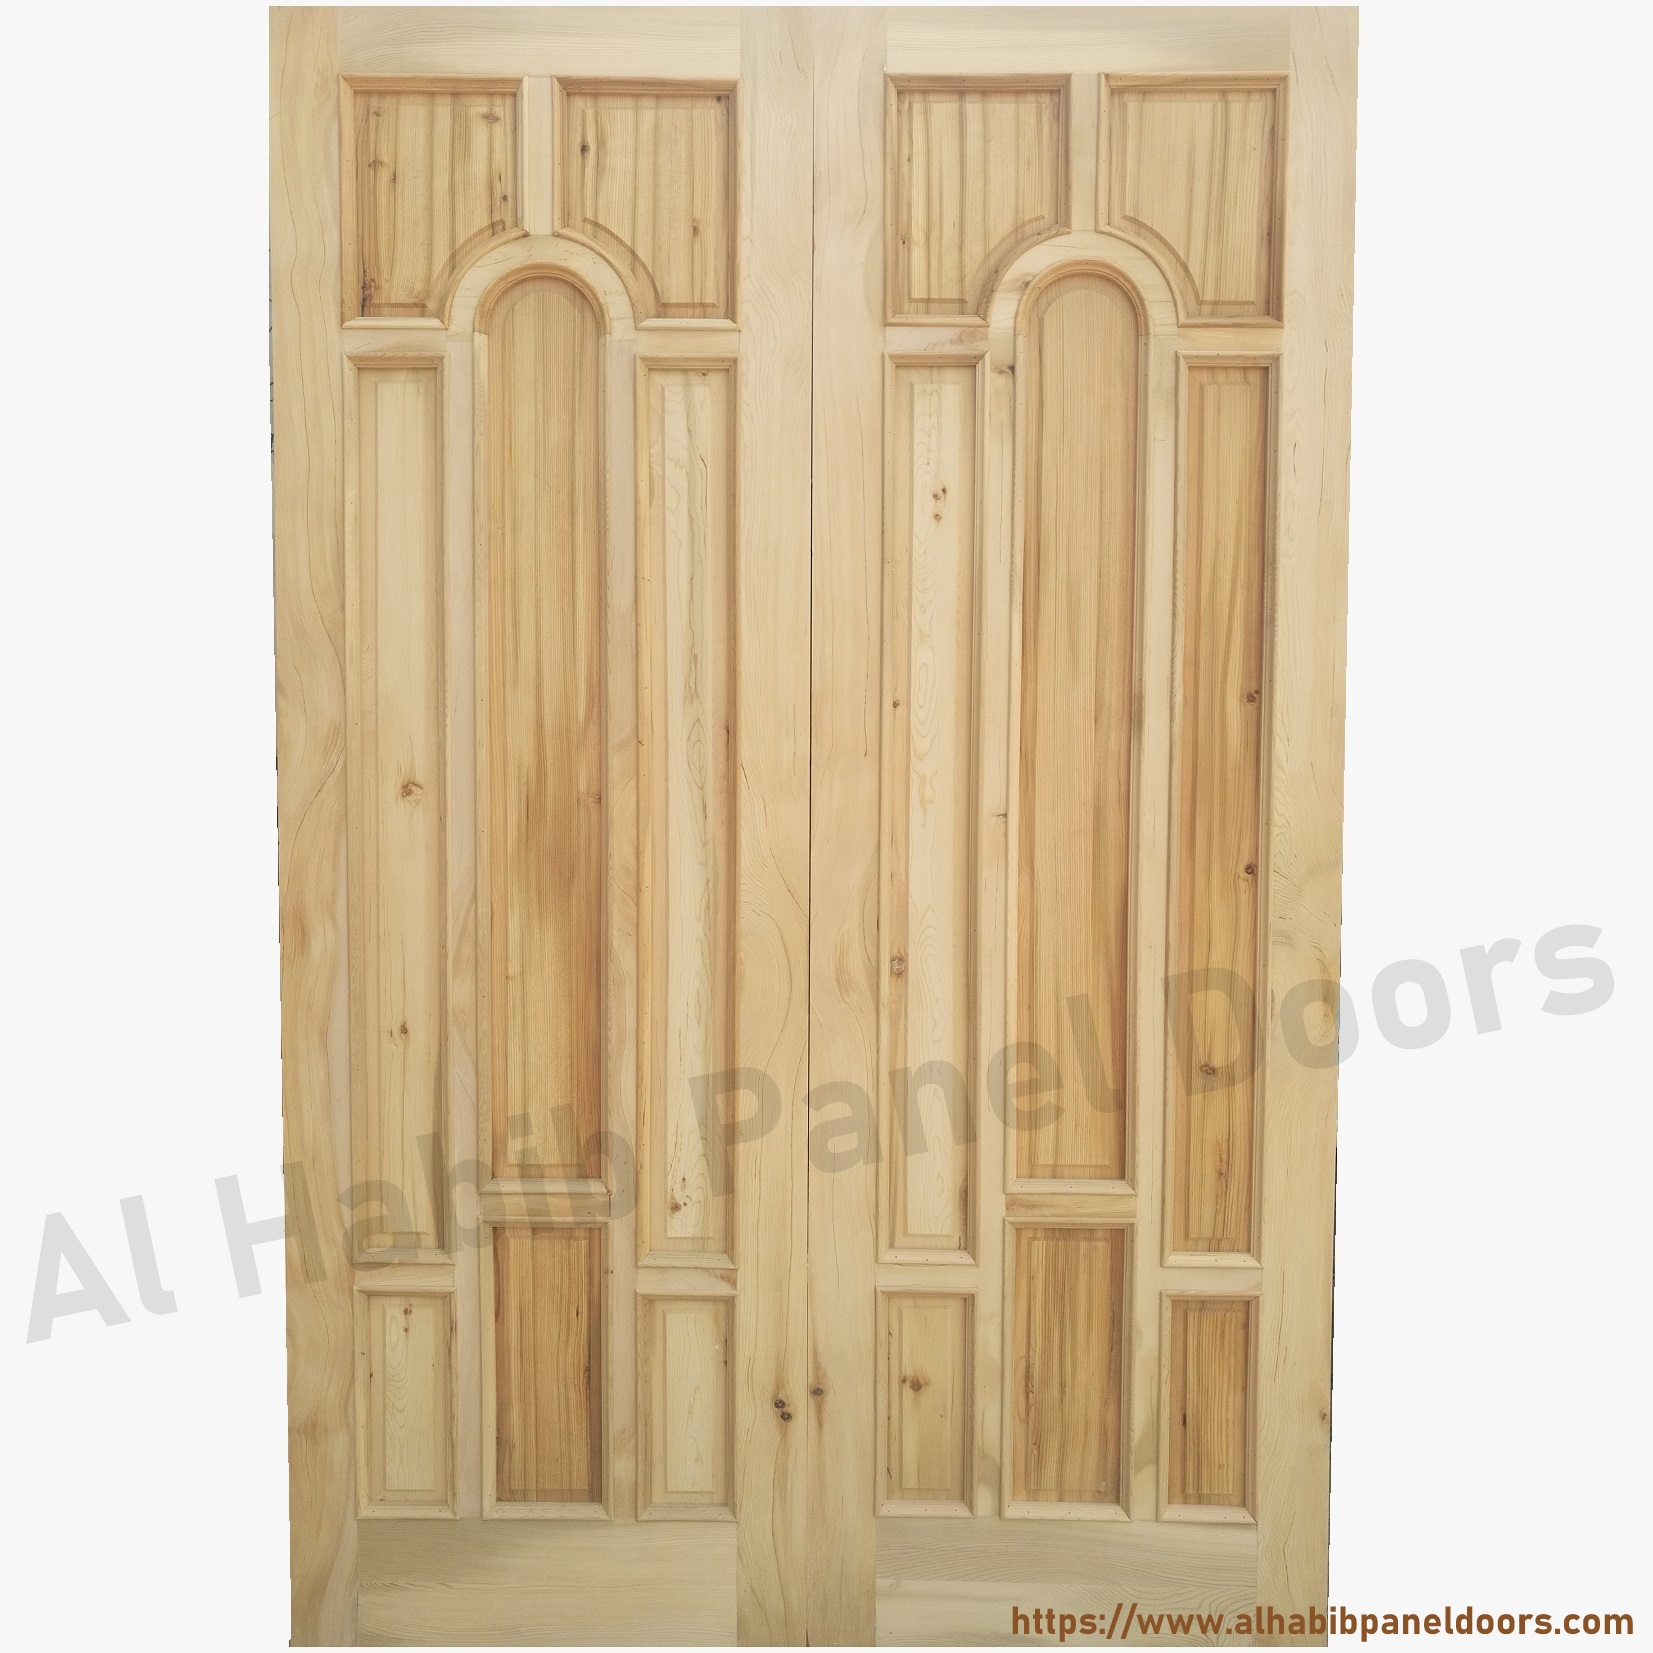 Main double door hpd329 main doors al habib panel doors for Main two door designs